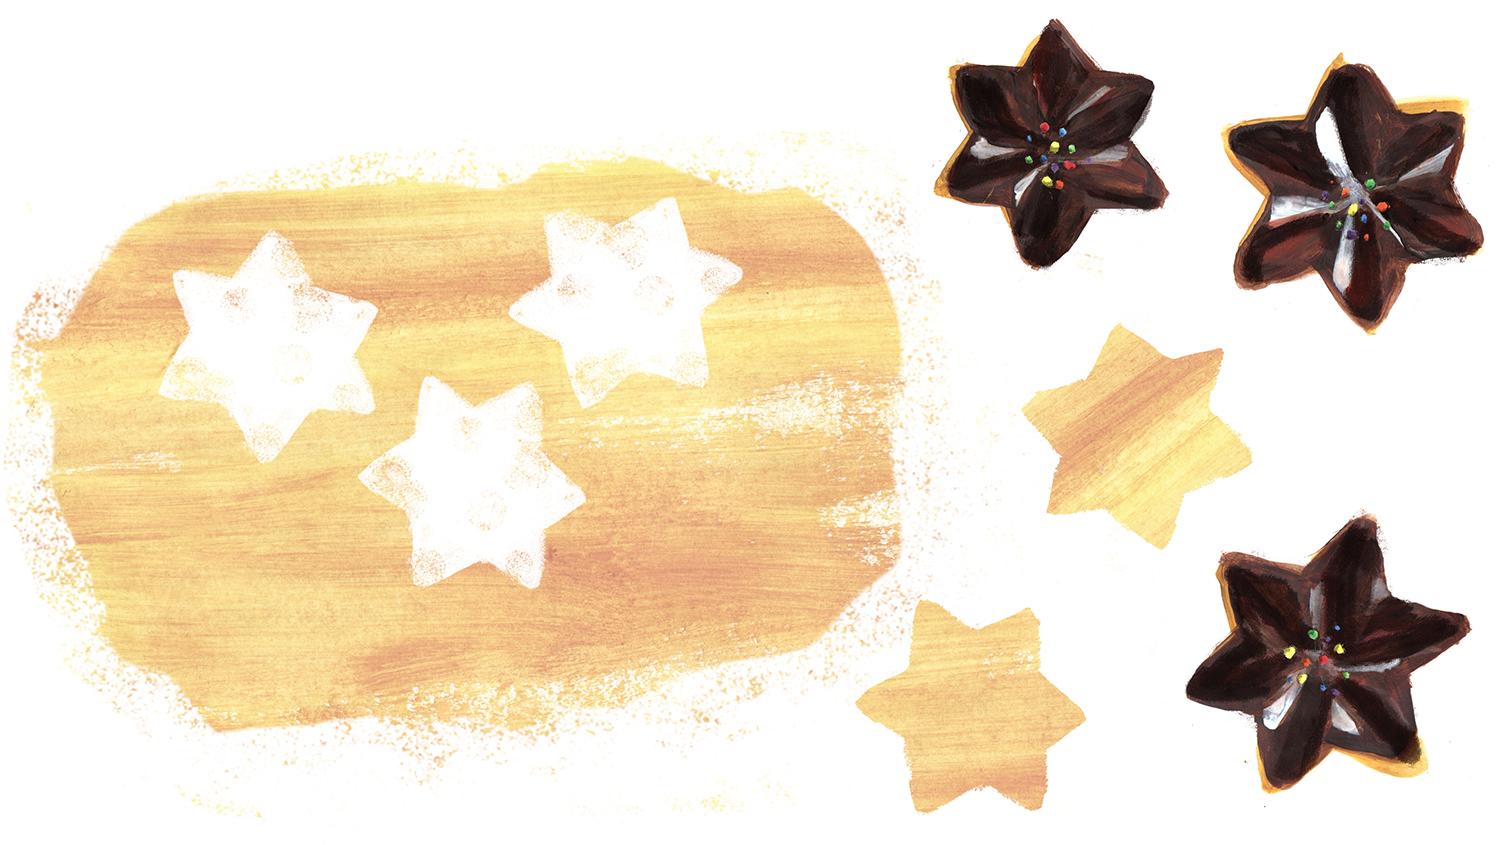 Chocolate Dipped Shortbread Cookies, Lauren Monaco Illustration